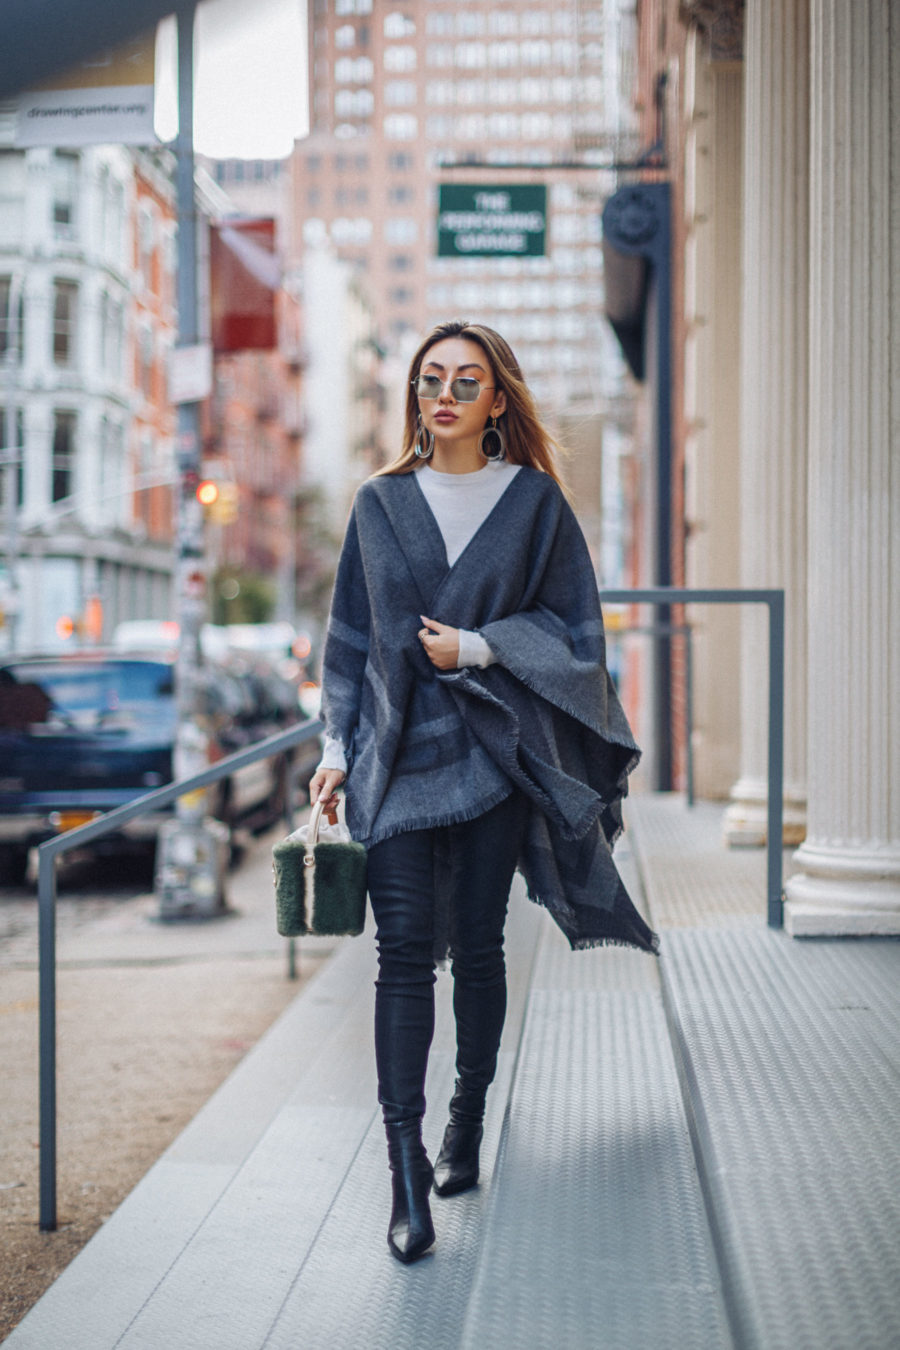 fashion blogger jessica wang wears poncho outfit while sharing postpartum style tips // Jessica Wang - Notjessfashion.com